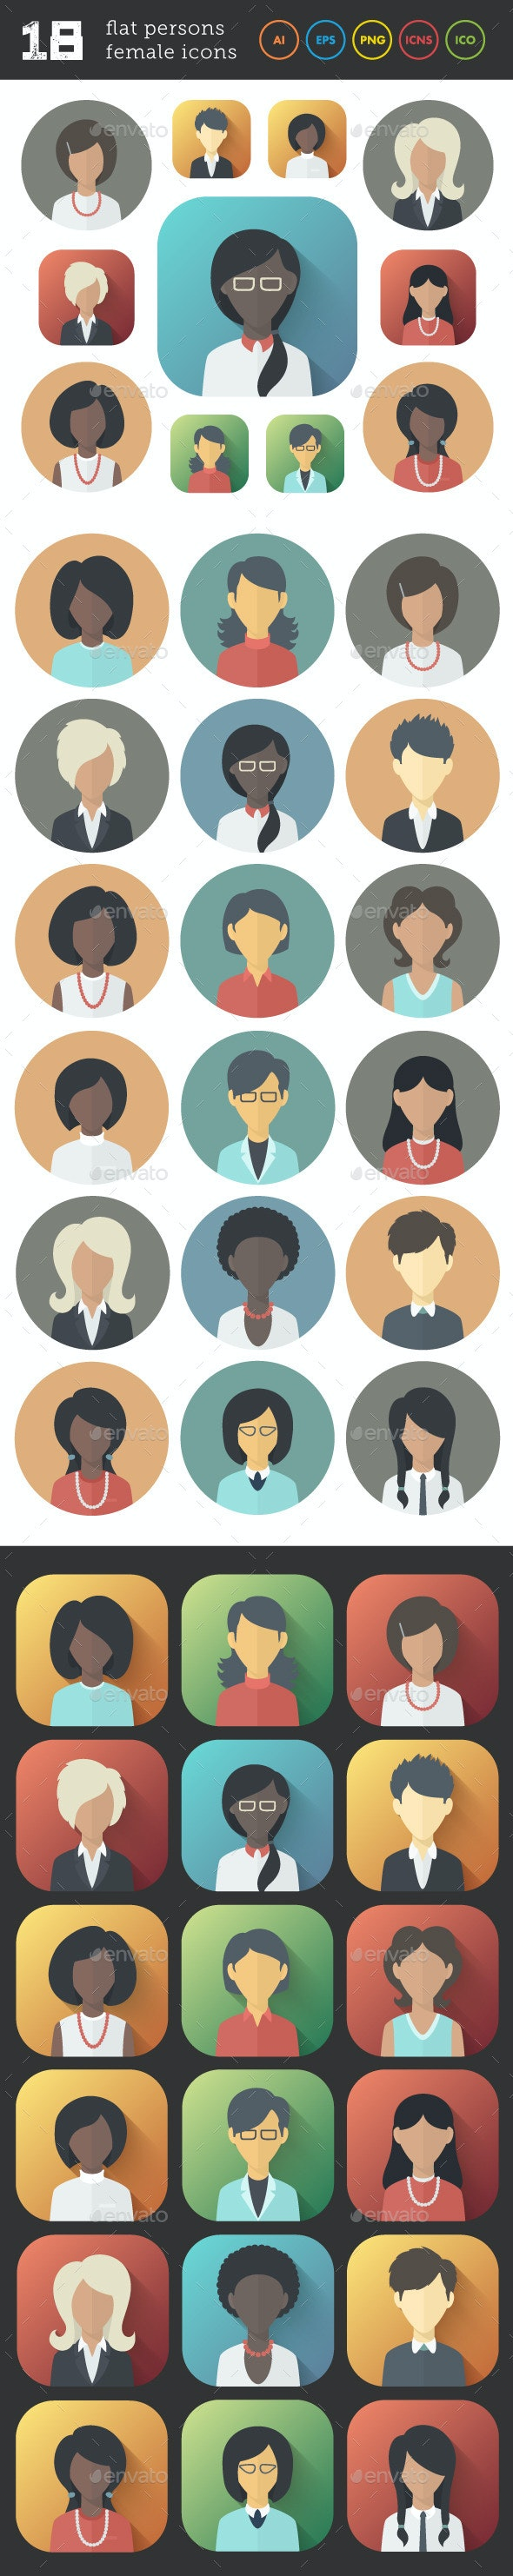 Flat Icons Set of Female Persons - People Characters